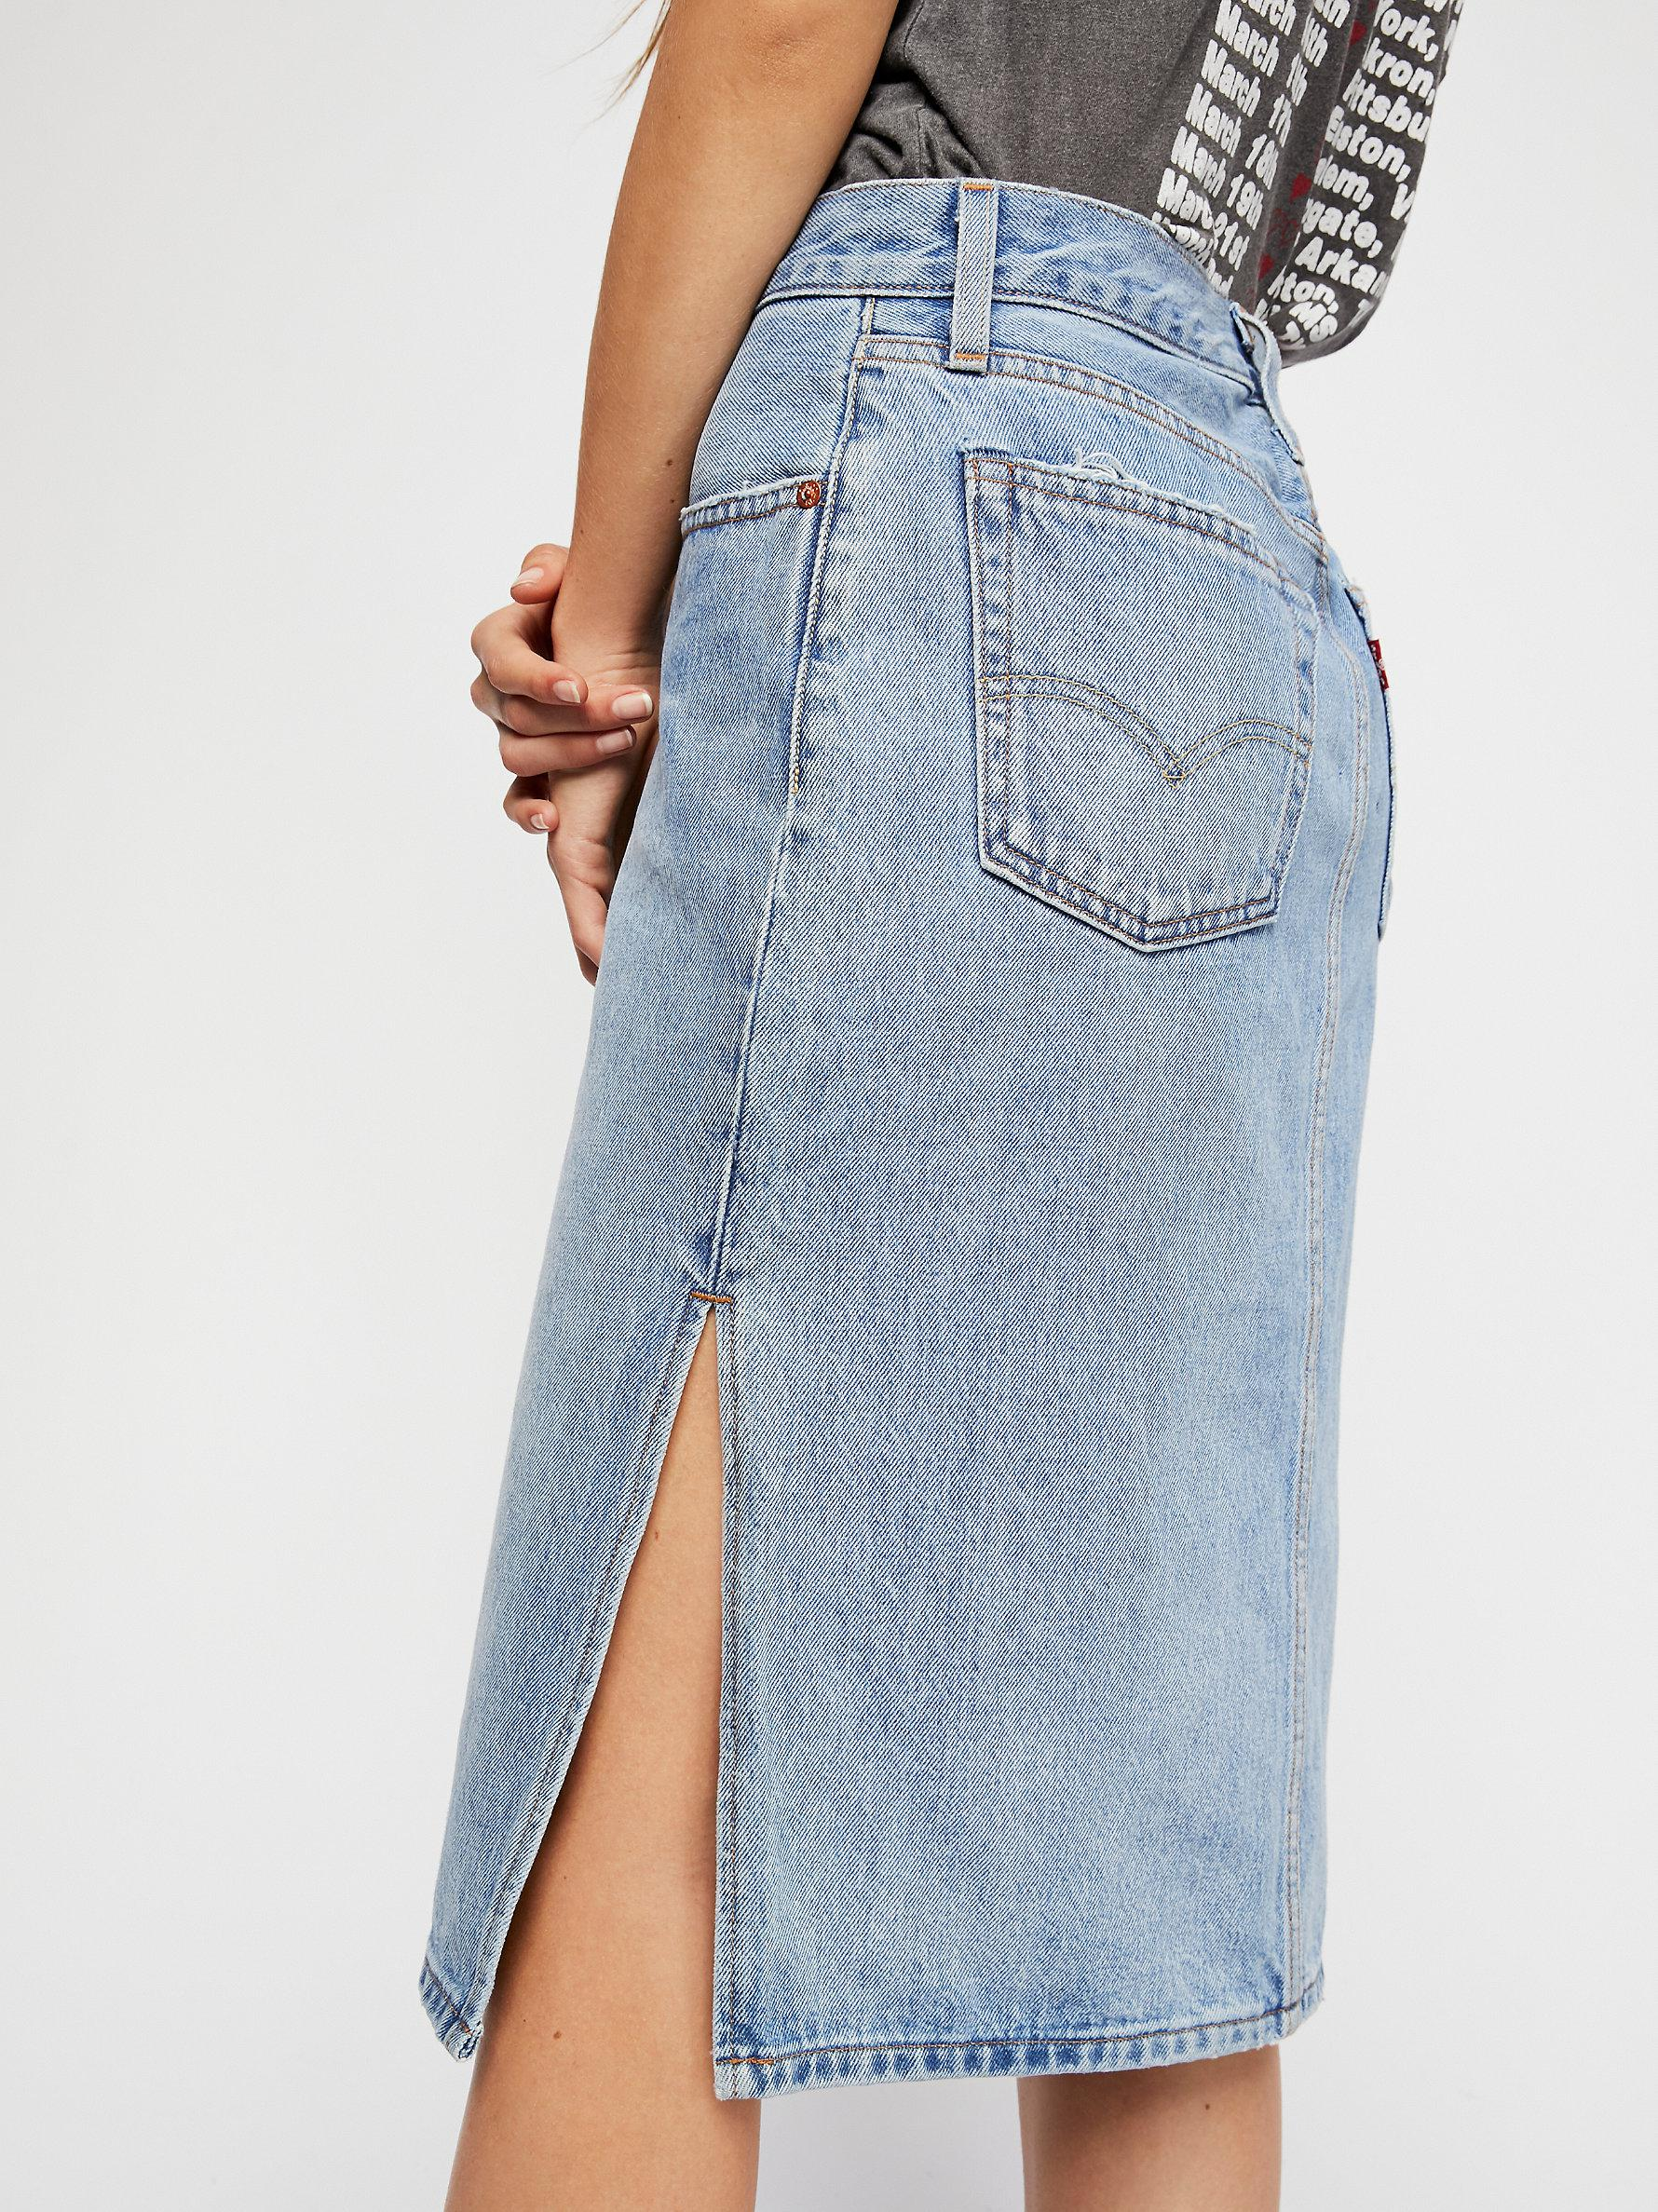 Lyst - Free People Levi s Side Slit Denim Skirt in Blue ca0bdf2f0